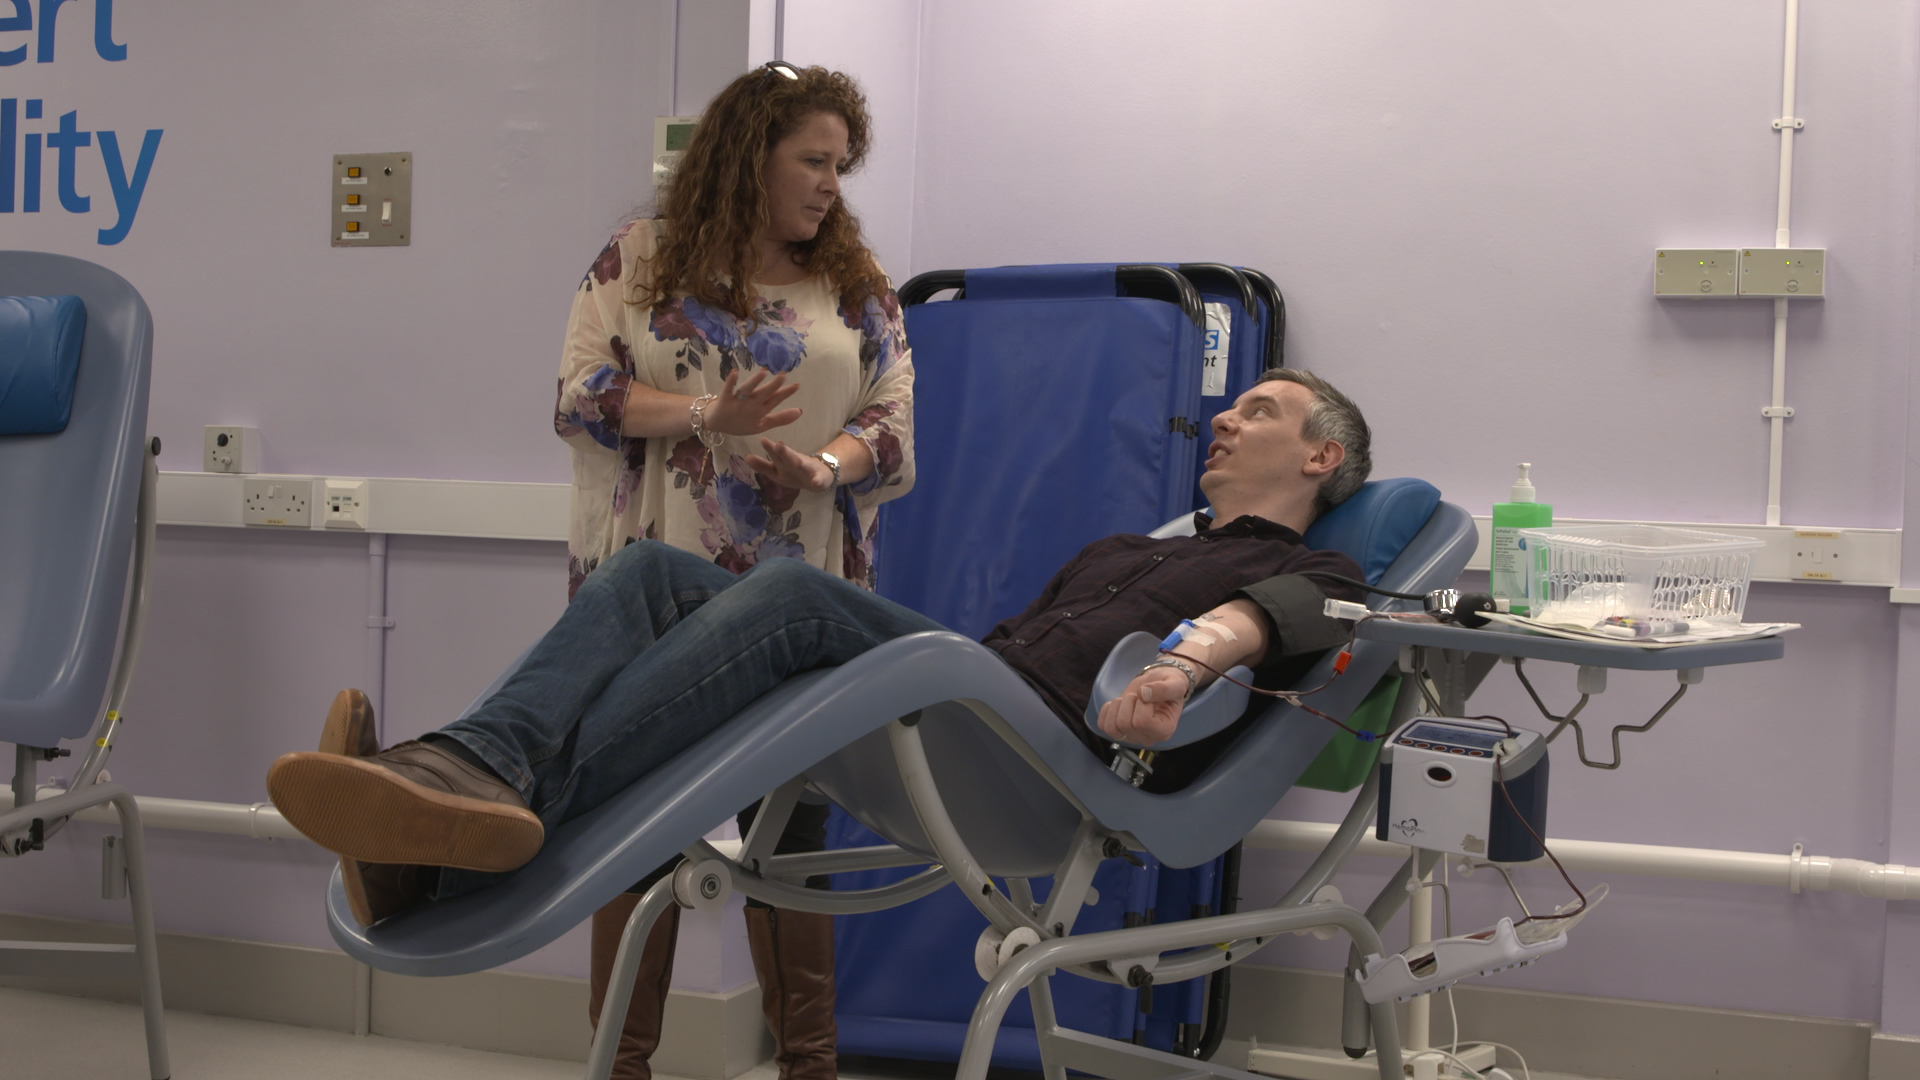 Karl chats to Emily while giving blood